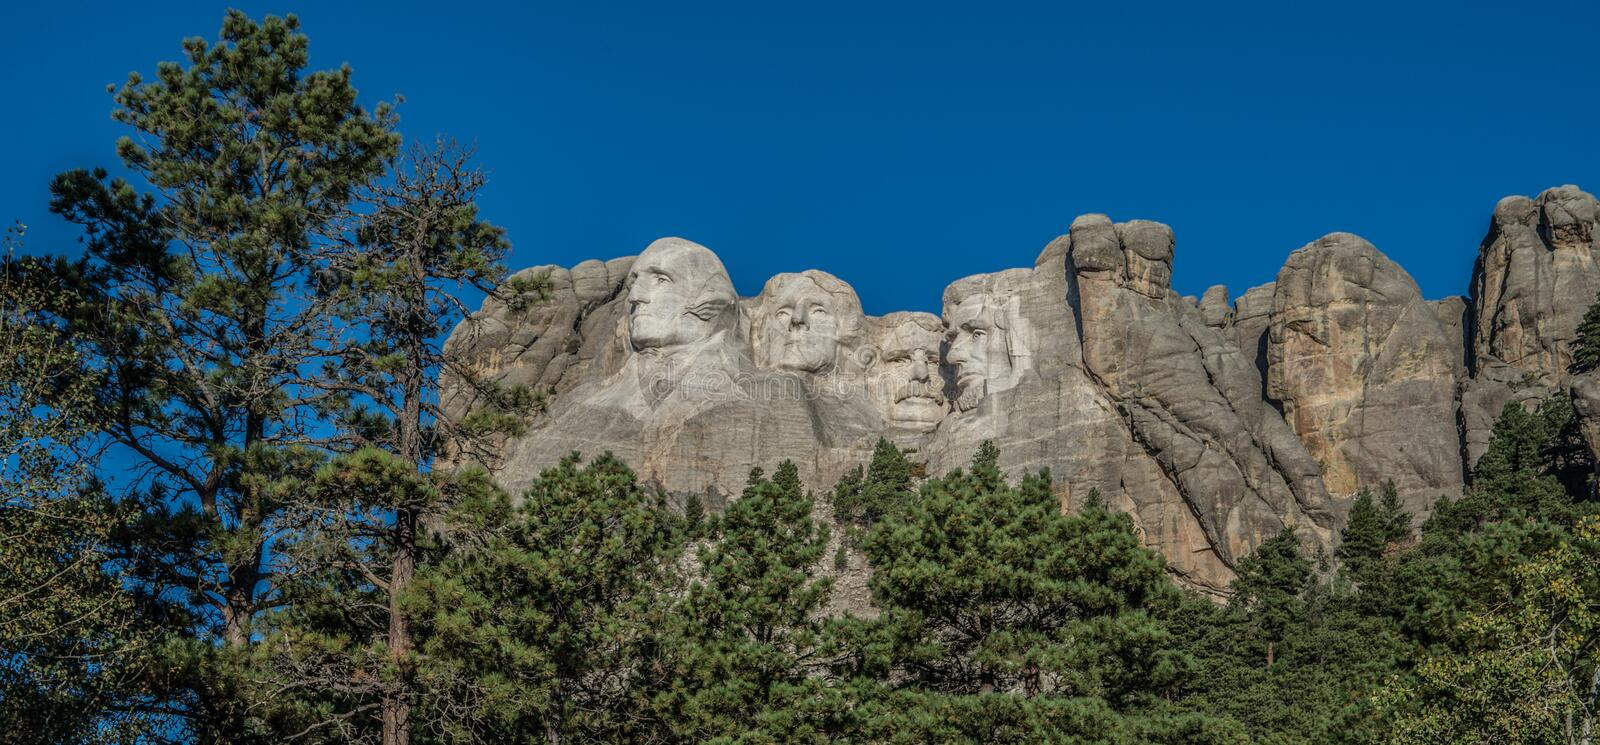 Carvings beim Mount Rushmore in South Dakota lizenzfreies stockbild